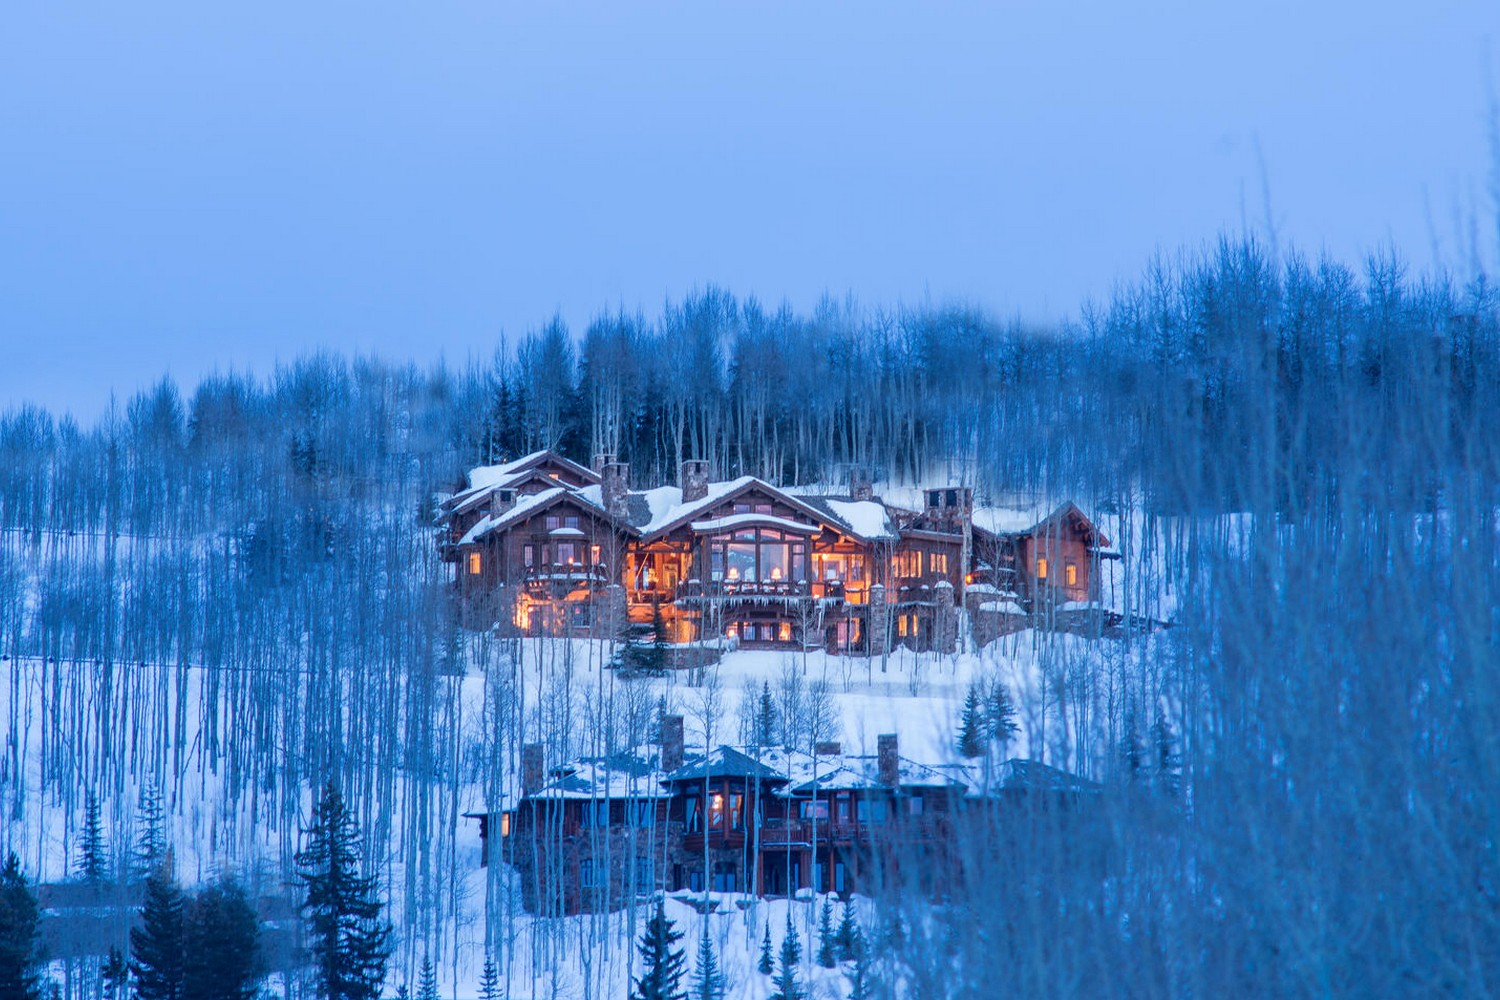 Moradia para Venda às Unrivaled European Estate in Bachelor Gulch 2150 Daybreak Ridge Bachelor Gulch, Beaver Creek, Colorado, 81620 Estados Unidos